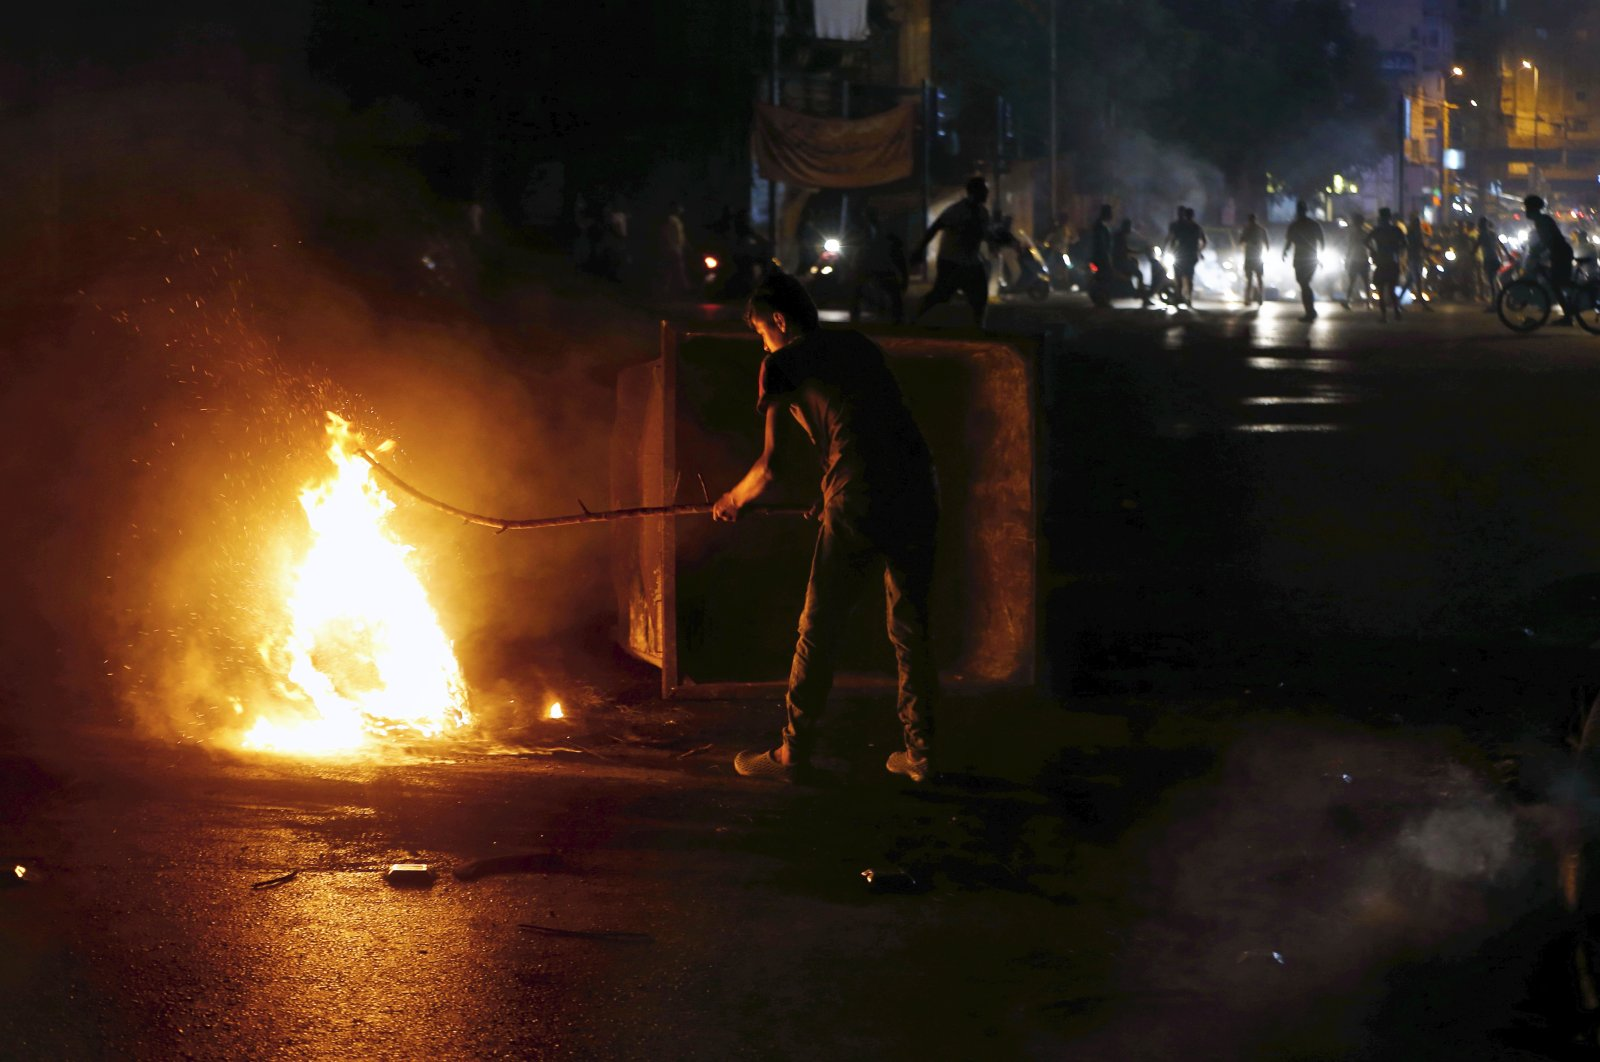 An anti-government demonstrator burns tires to block a road, Beirut, July 28, 2020. (AP Photo)